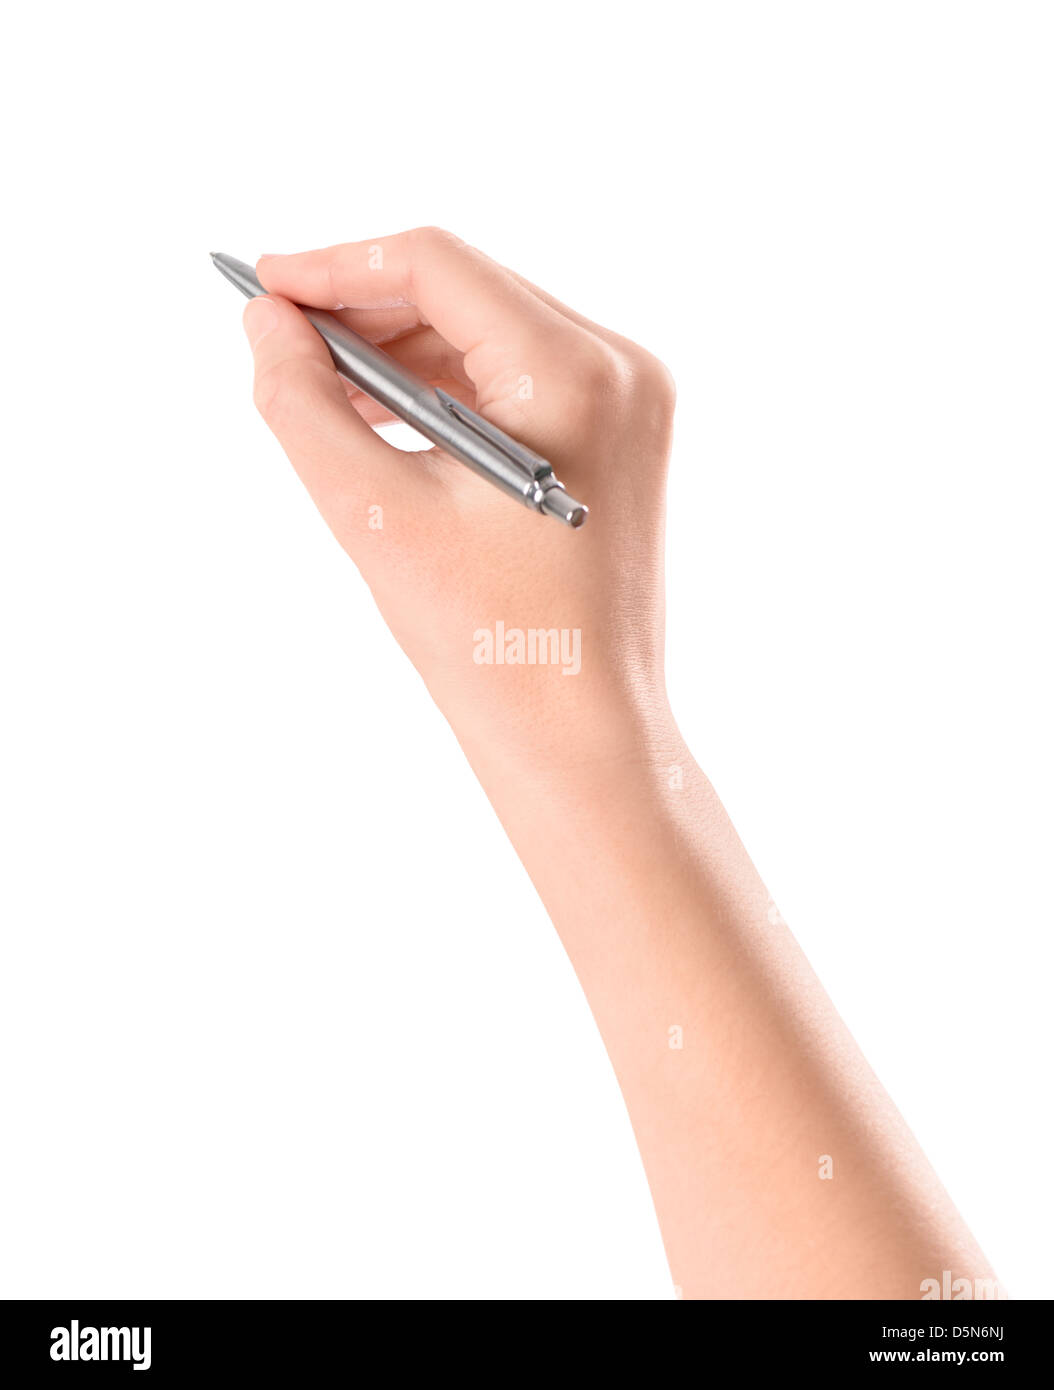 Close up of women arm writing with metallic pen. Isolated on white background. - Stock Image